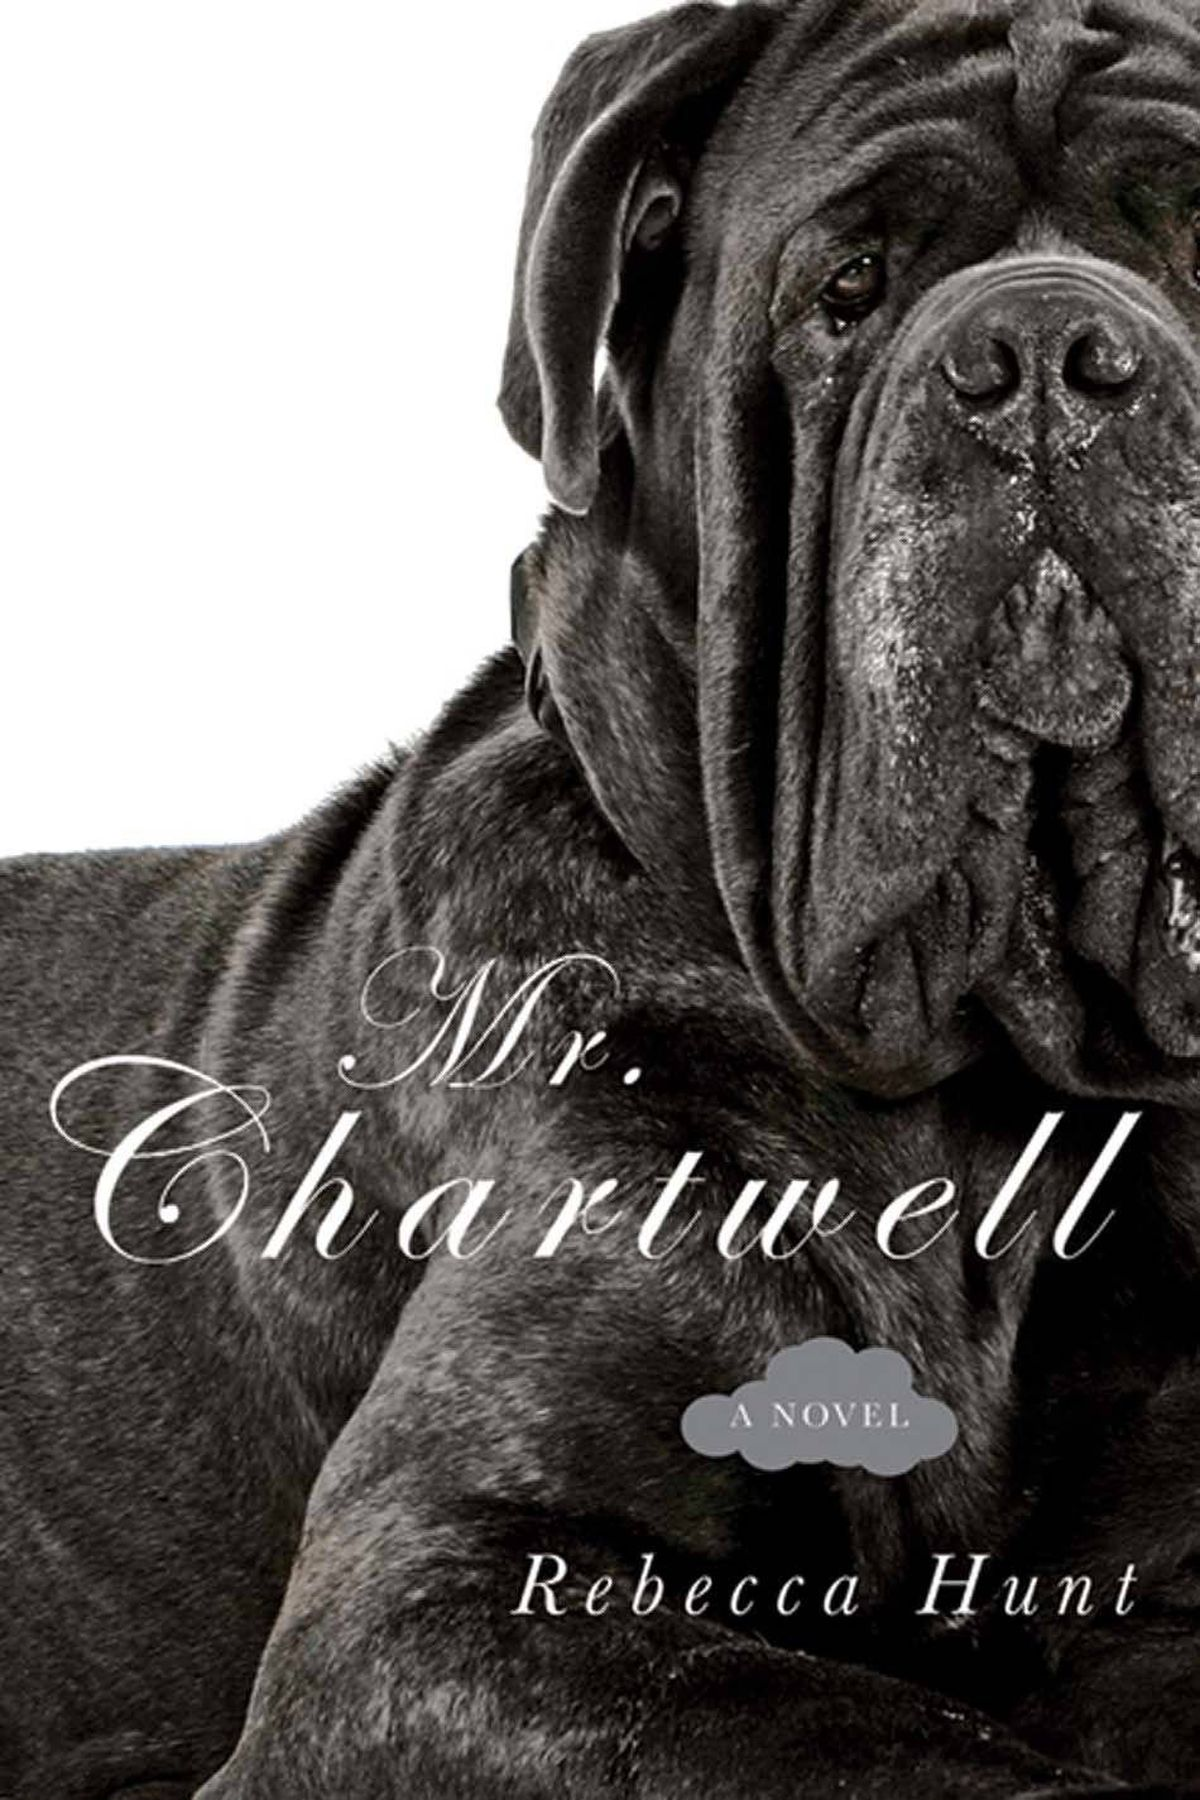 MR. CHARTWELL By Rebecca Hunt (HarperCollins) In Hunt's first novel, the subject is Sir Winston Churchill in the 1960s, and she delivers a refreshing, strange and deeply empathetic portrait of the great man in decline, along with a jumpy, twisty, brilliantly imagined story. Her subject is actually the Black Dog, which is how Sir Winston referred to his severe periodic depressions. – Peter Behrens